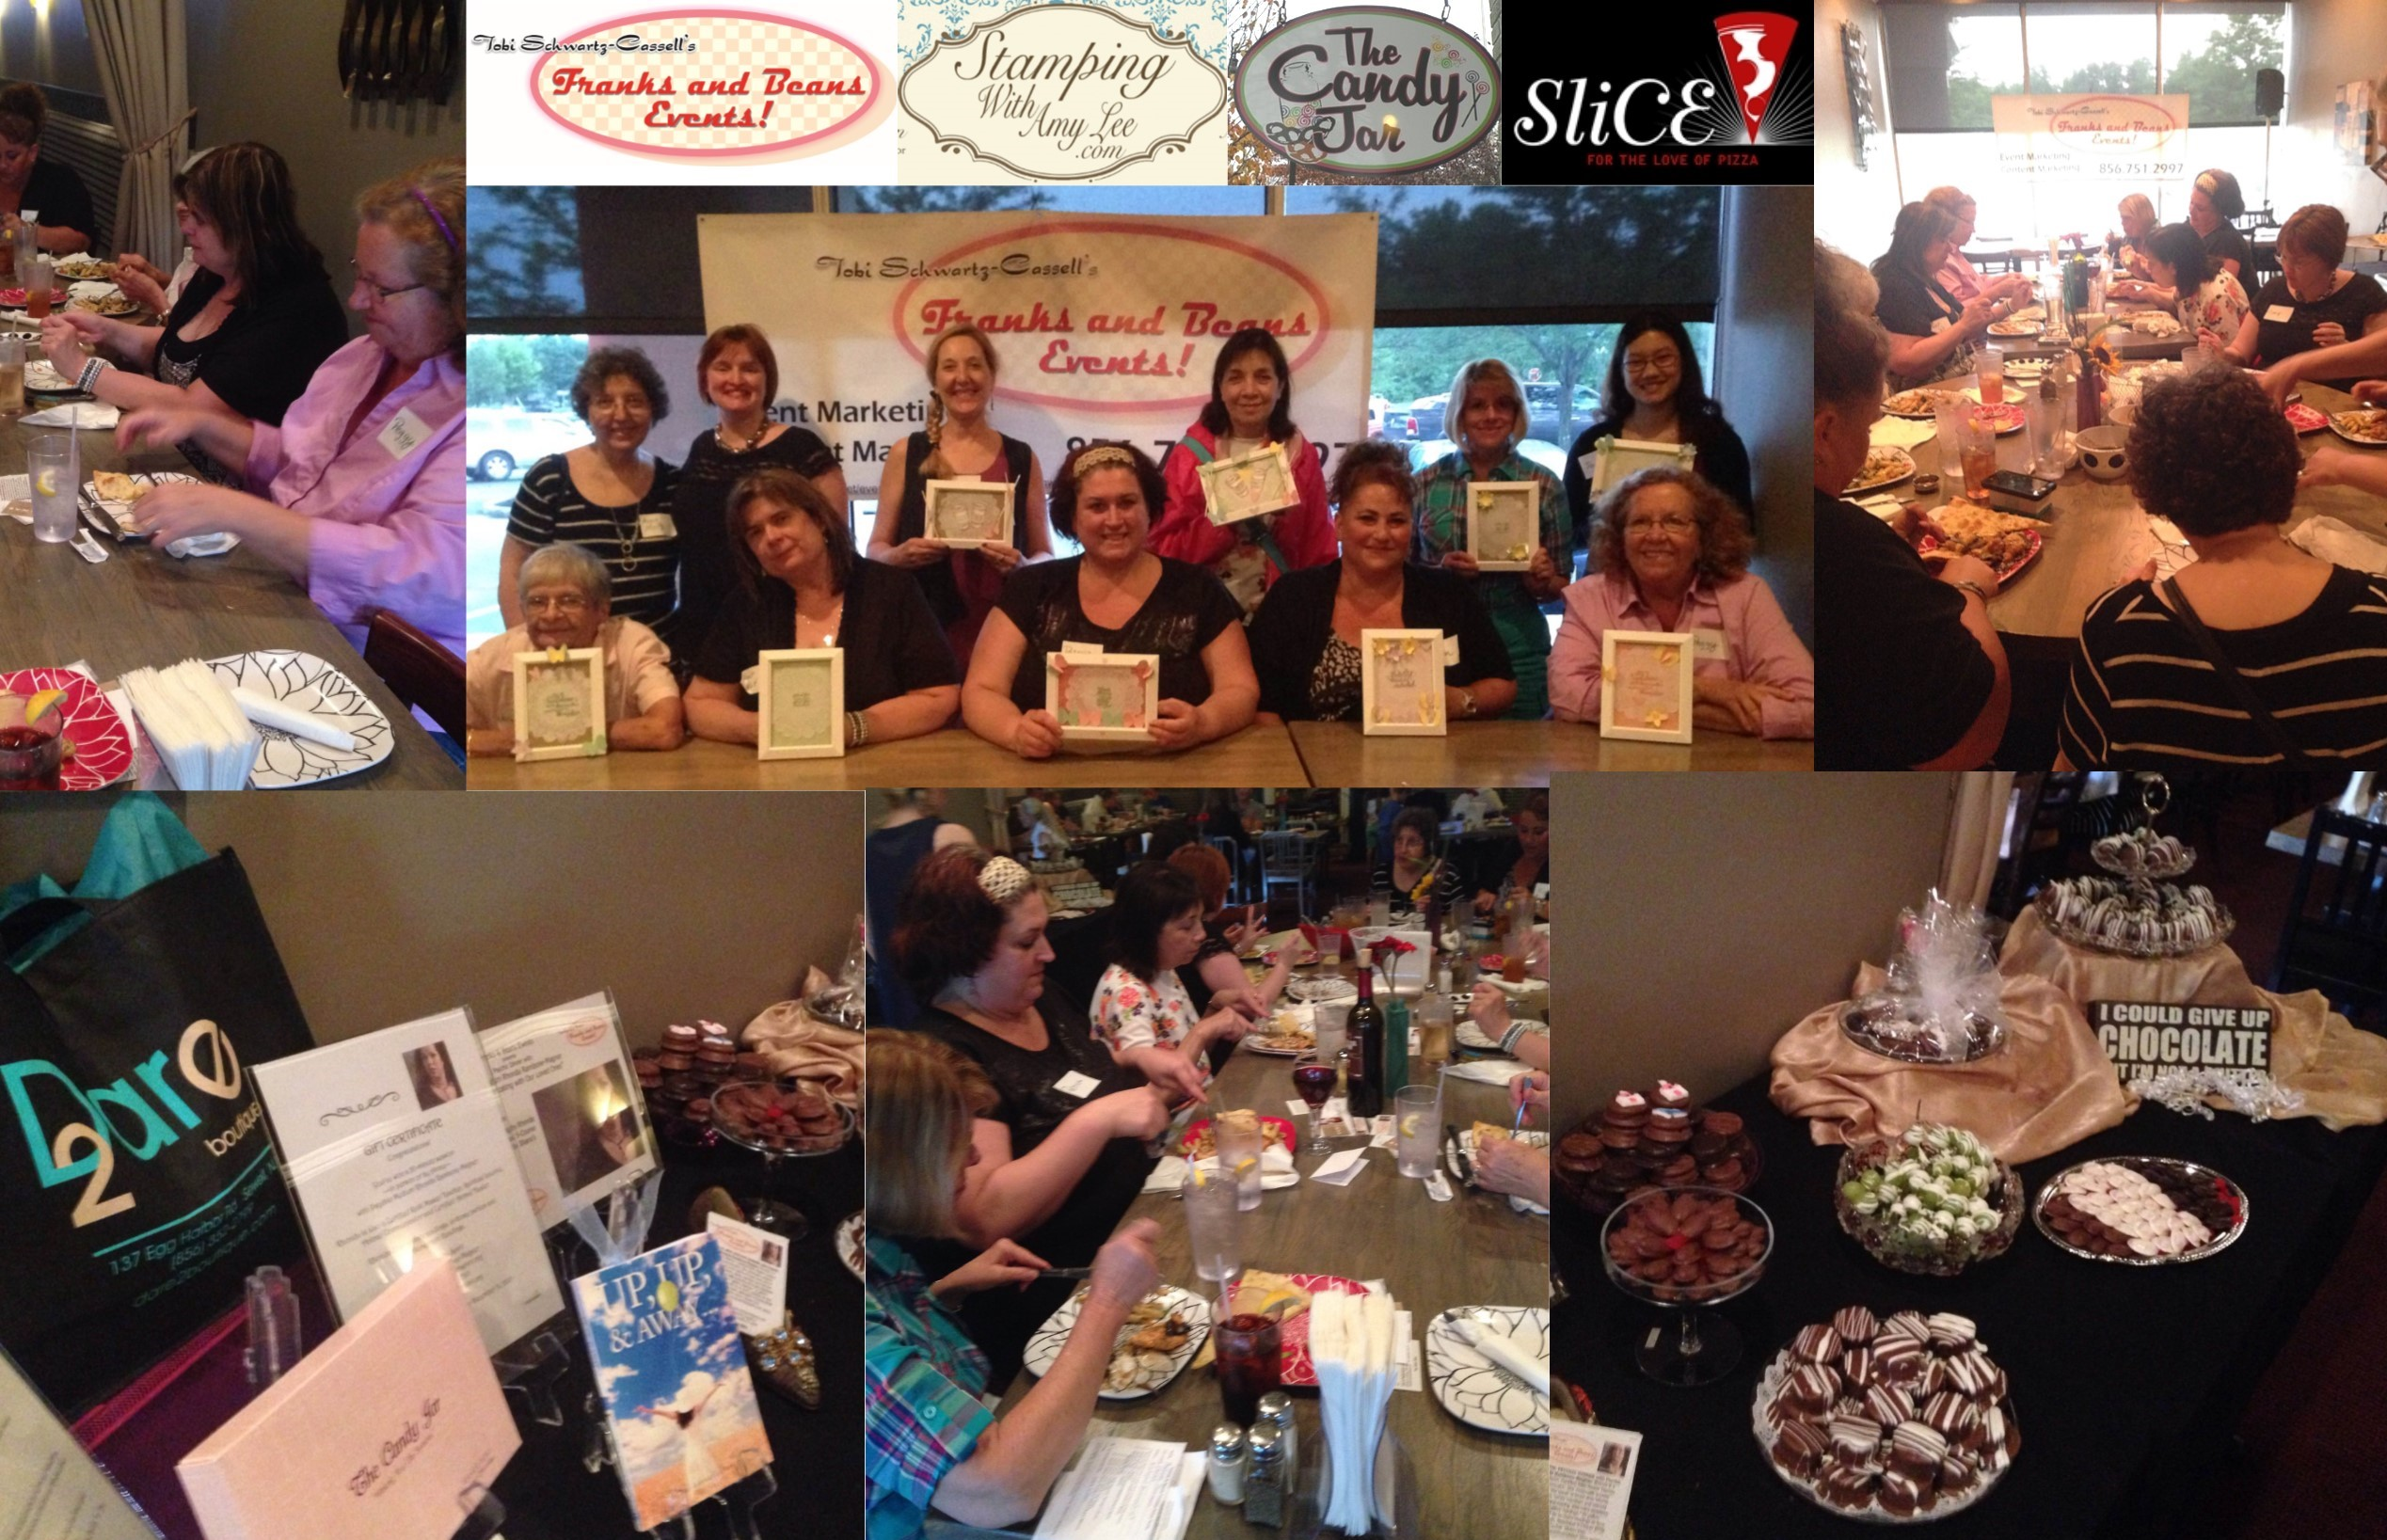 Another fun night! This one in Gloucester County at SLiCE in Washington Twp!